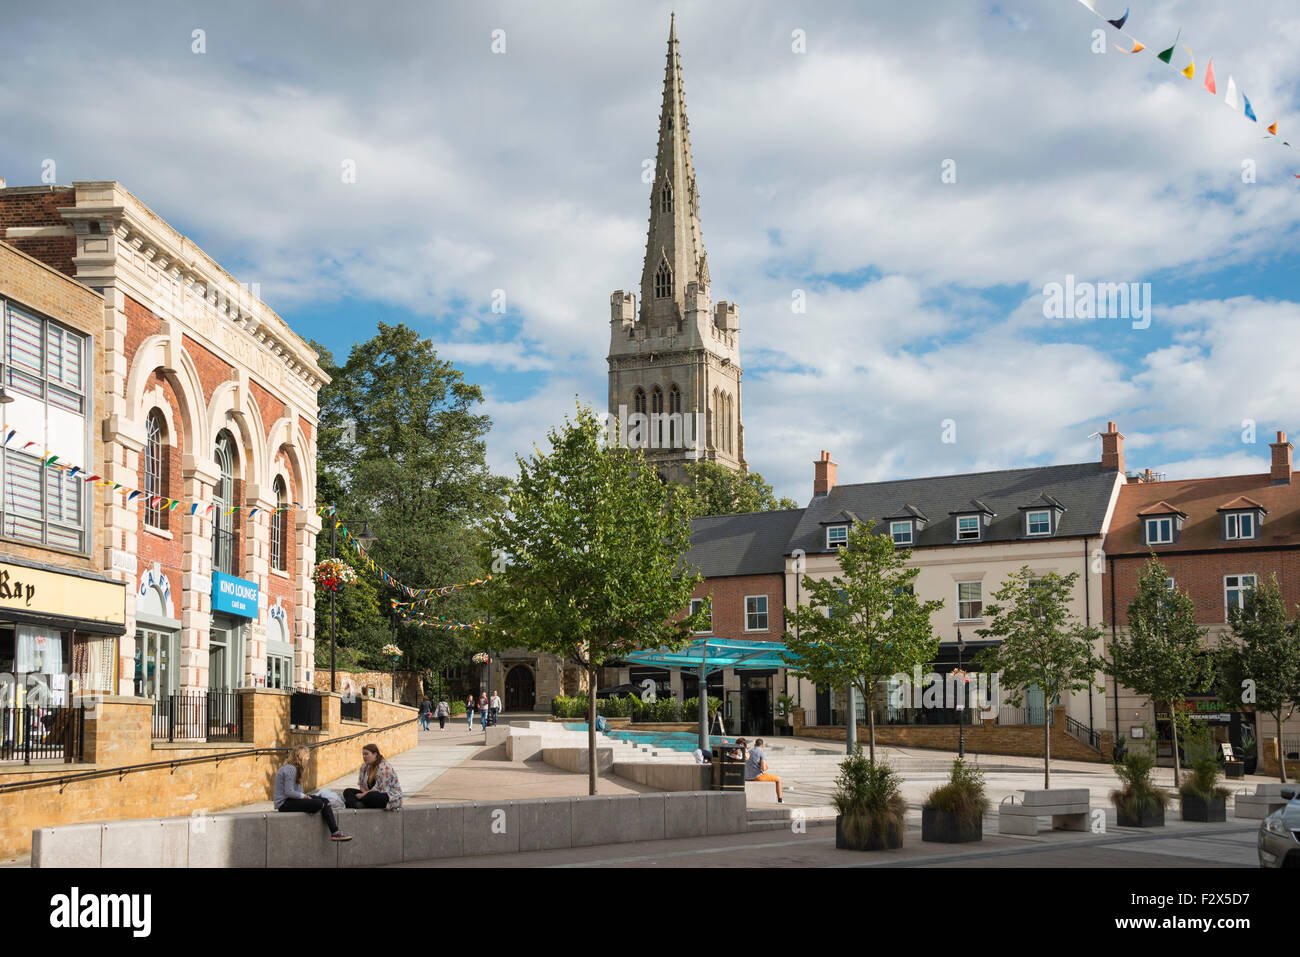 St Peter and Paul Church from Market Place, Kettering, Northamptonshire, England, United Kingdom - Stock Image